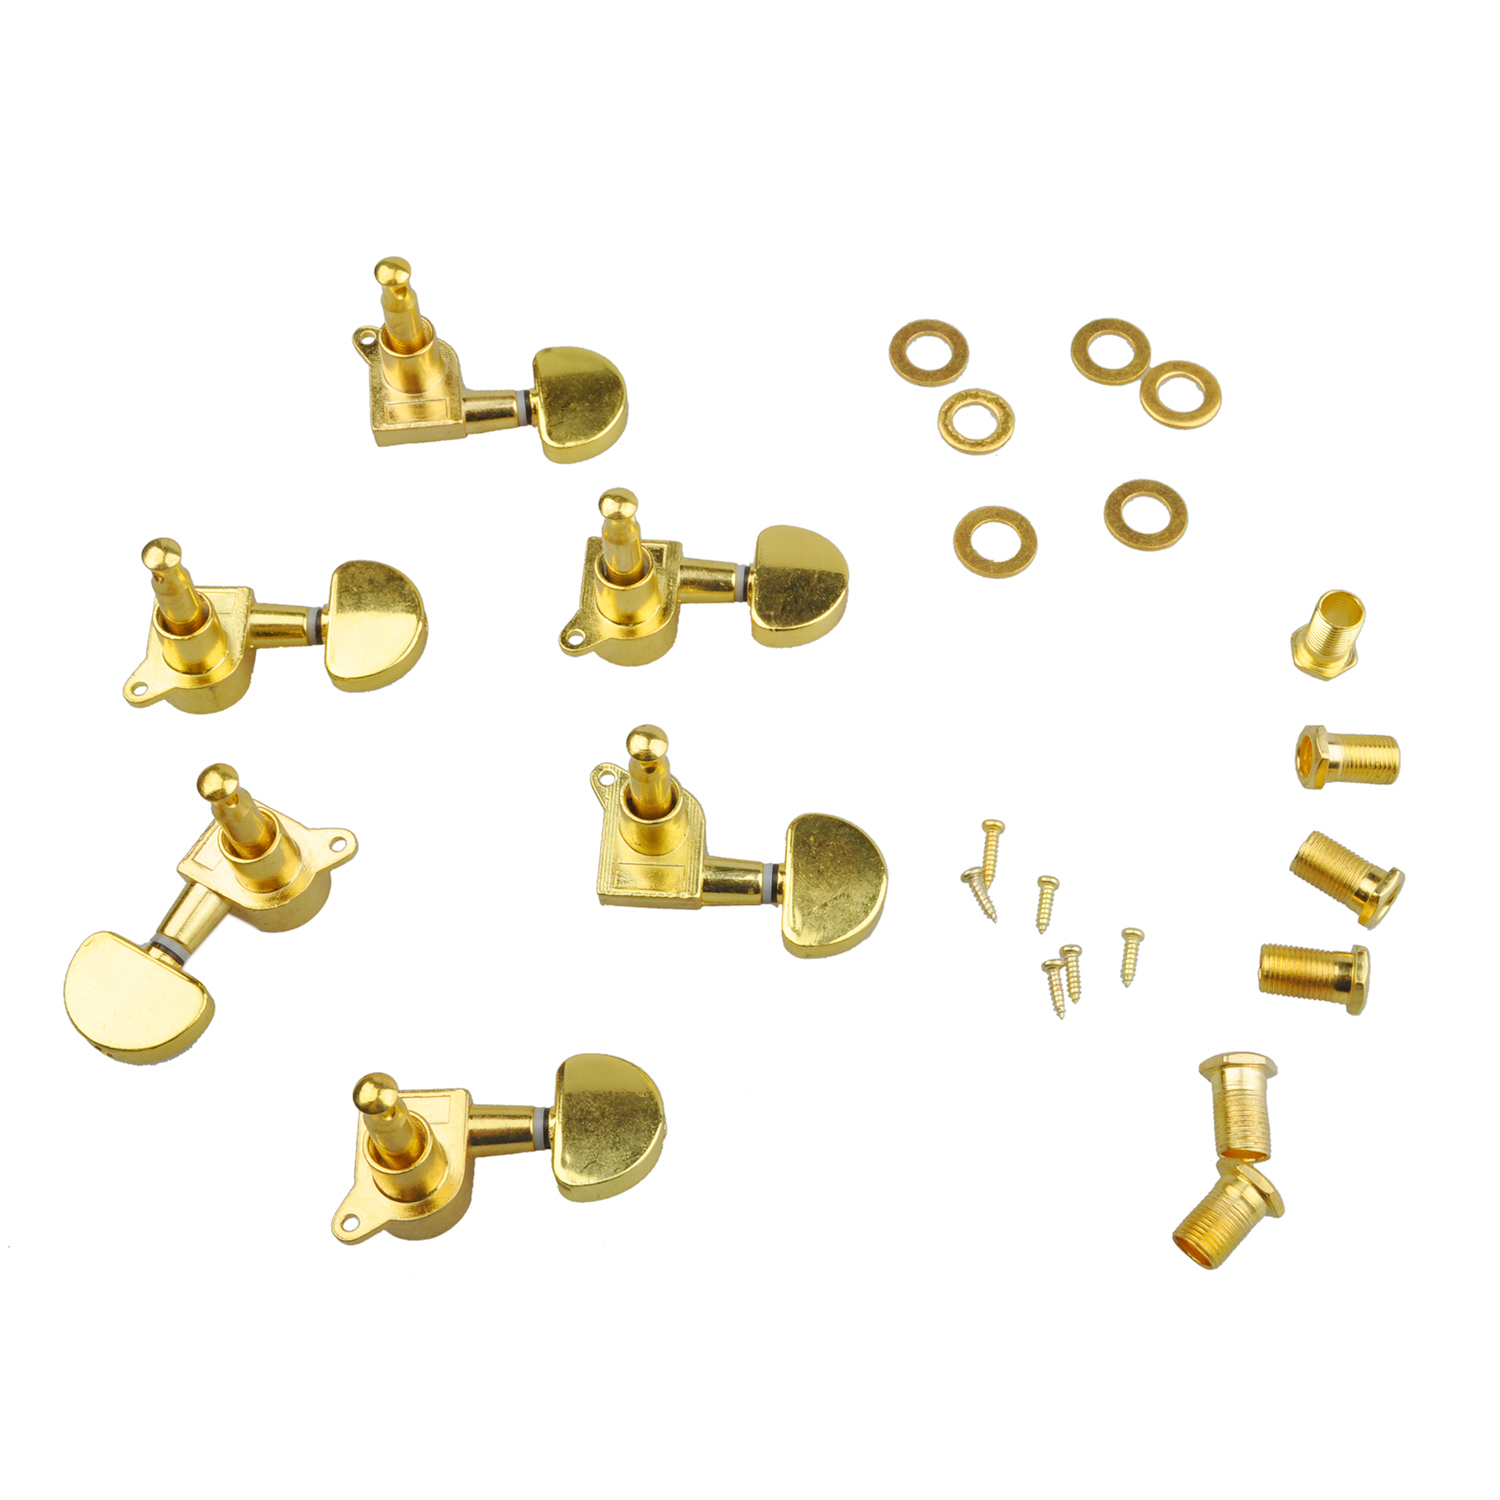 IRIN 3 Pairs Sealed Guitar String Tuning Pegs Tuners Machine Heads 3L + 3R Gold / Steel and Zinc Alloy Gold Guitar Heads